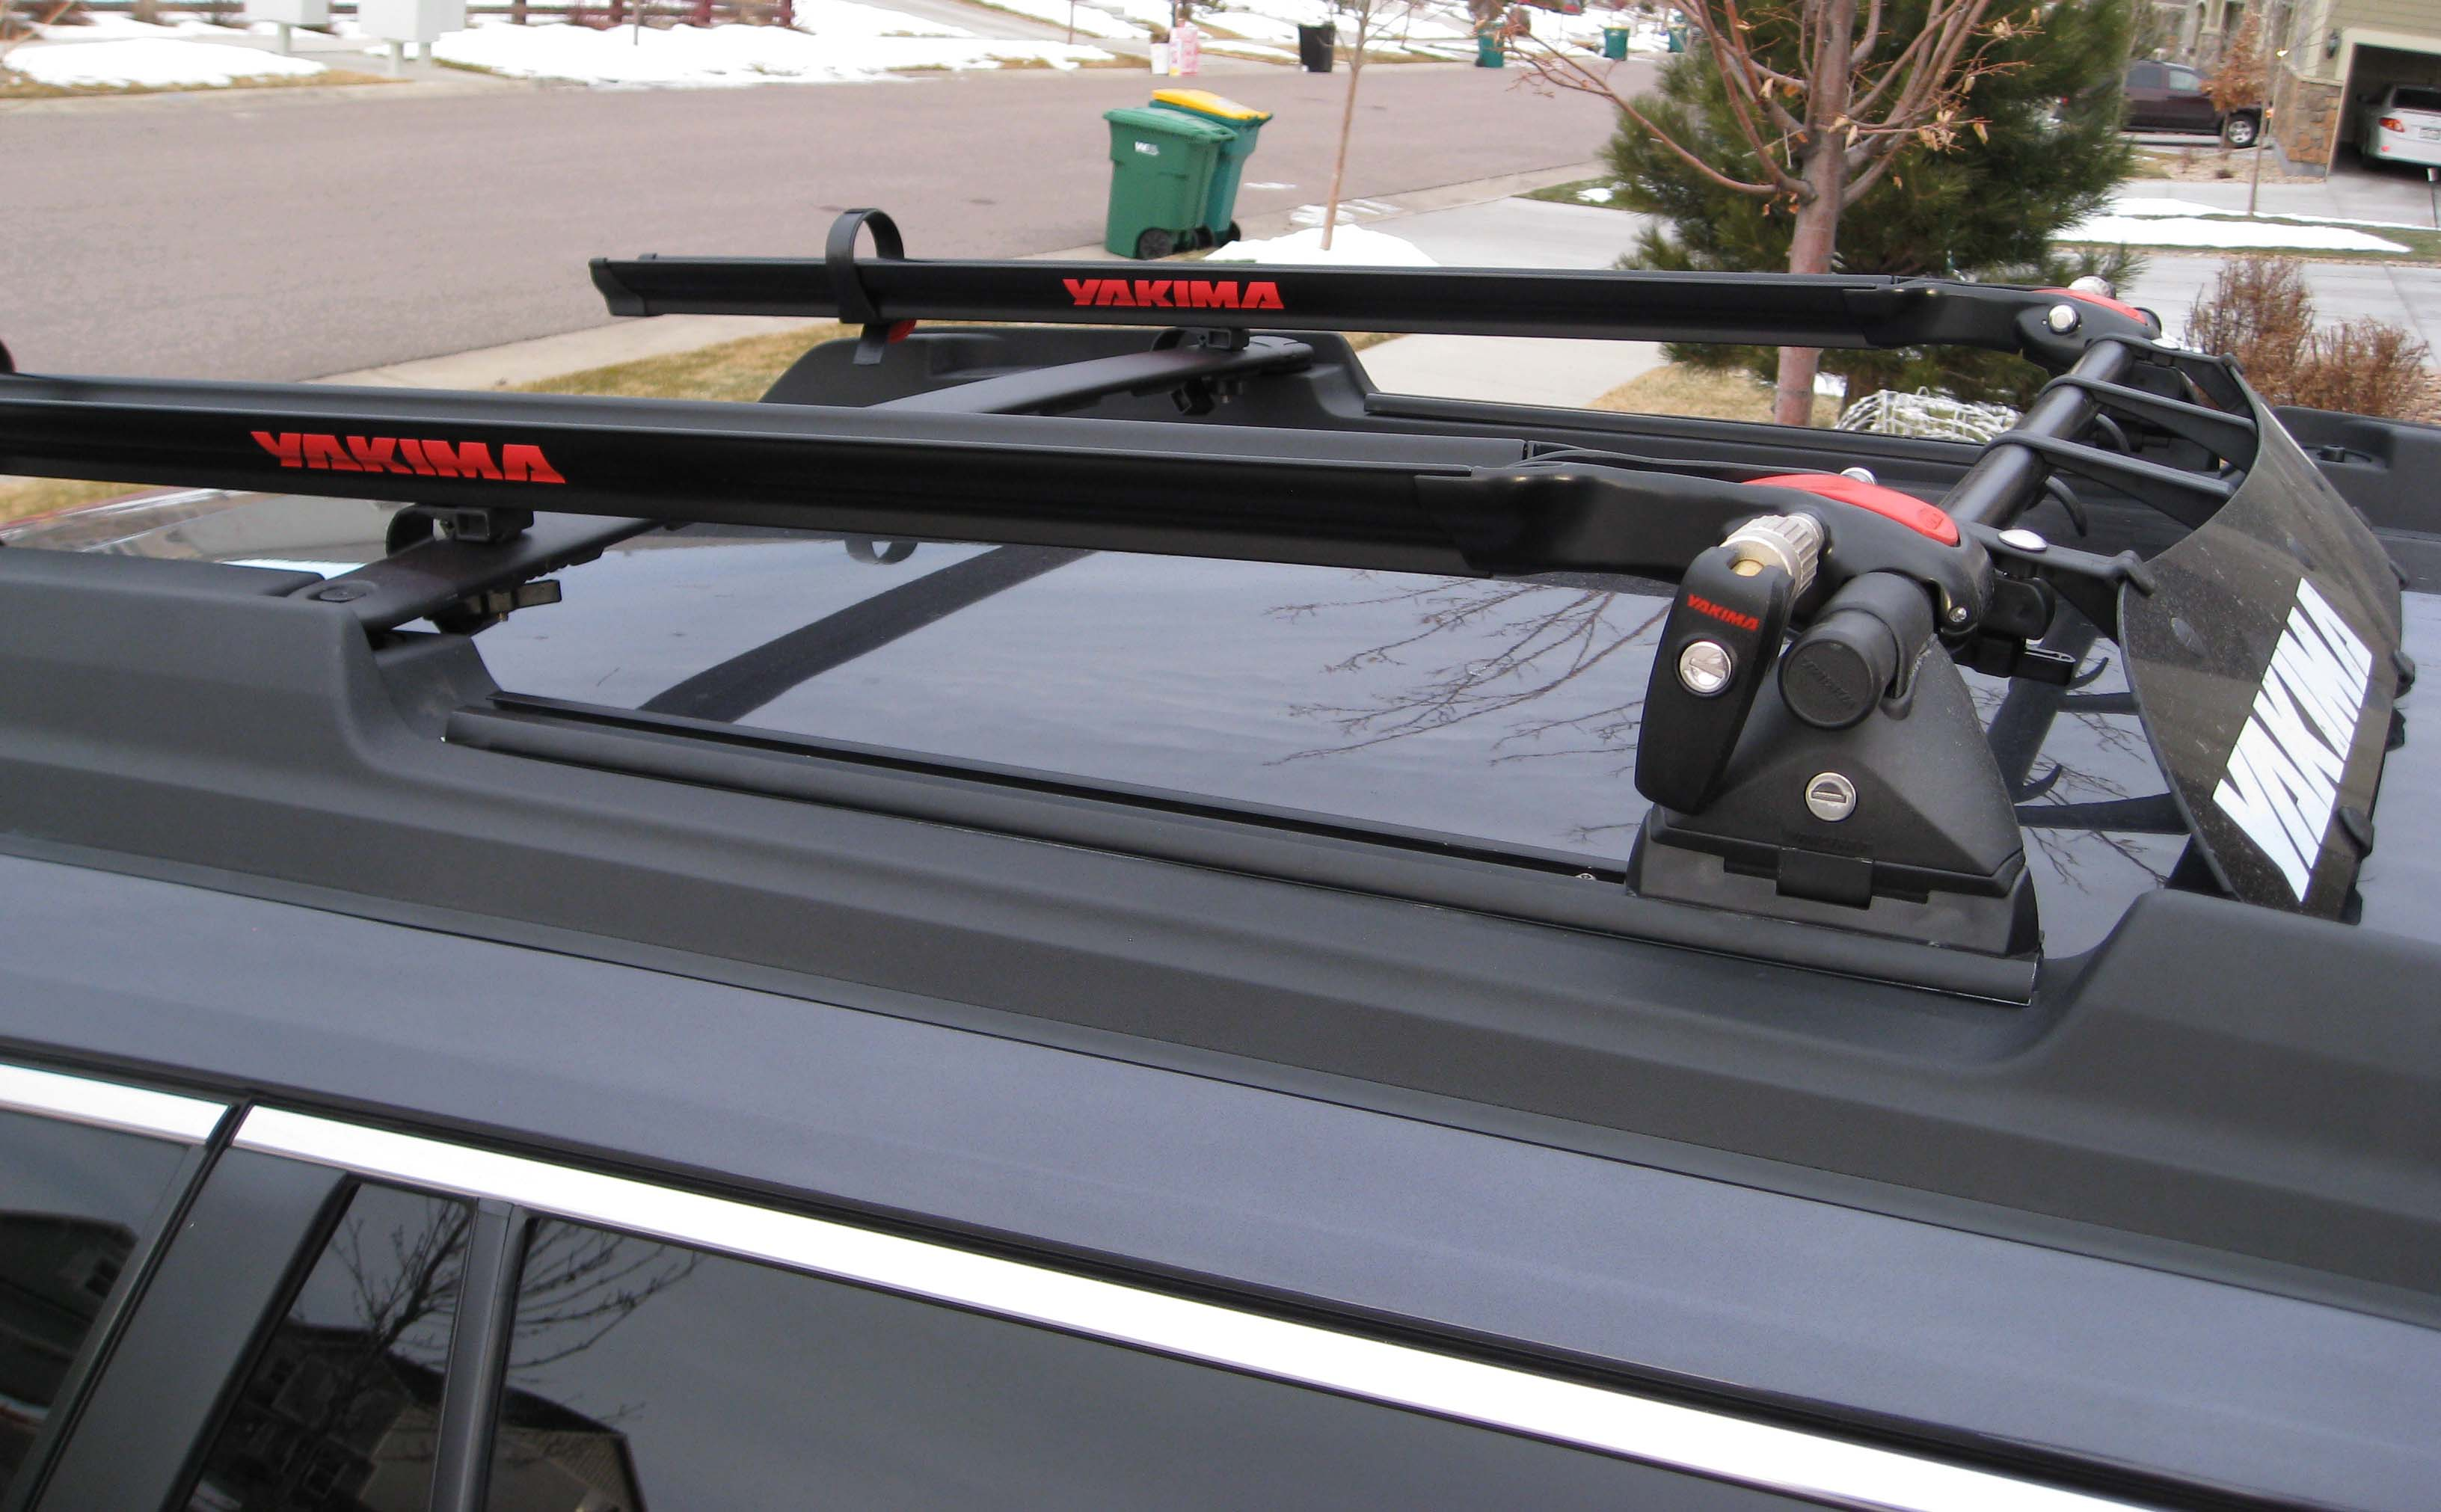 Roof Rack: MOD for bike racks